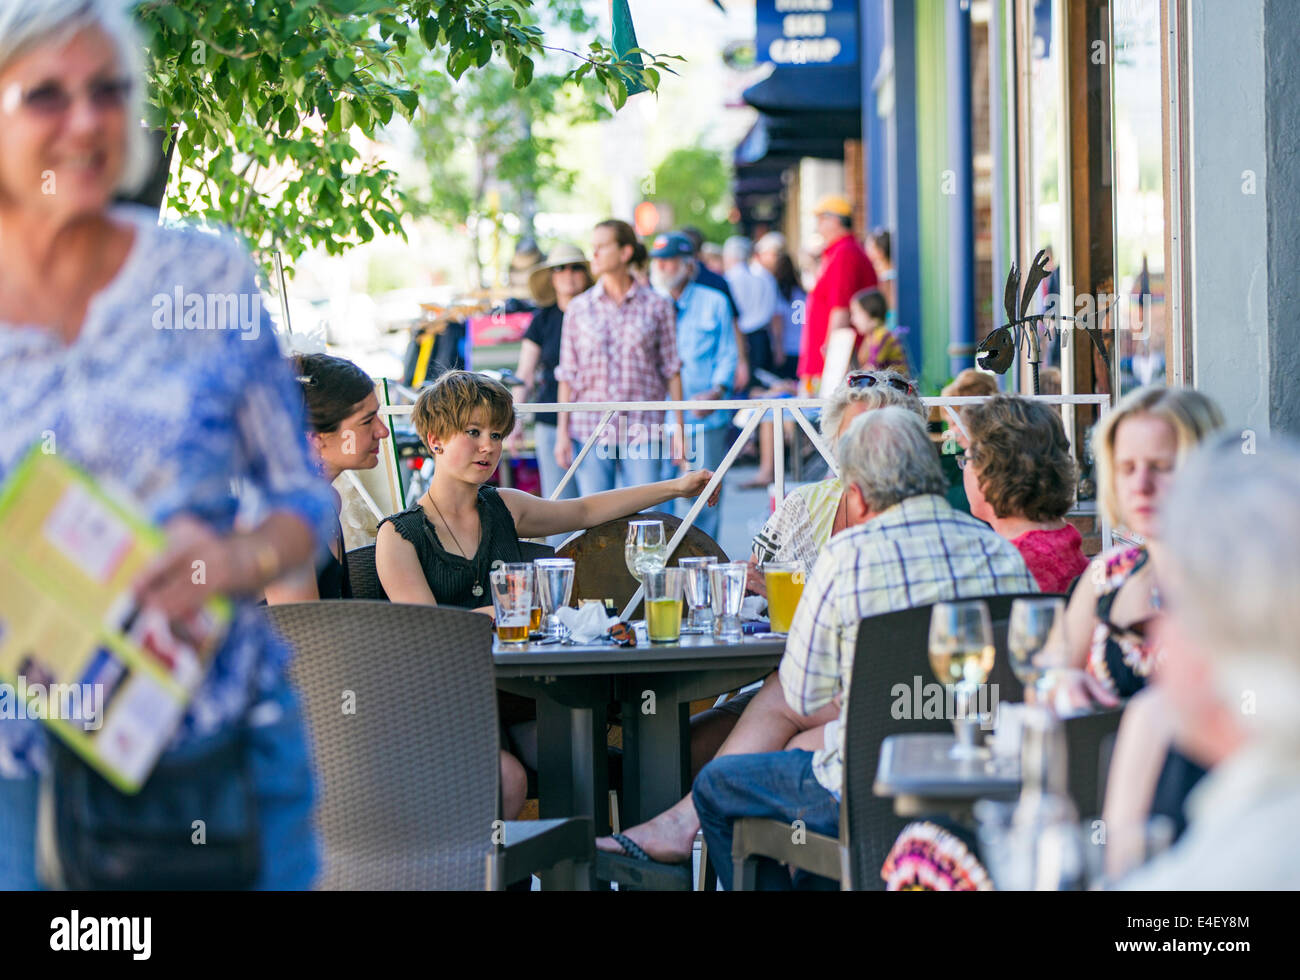 Visitors enjoying food & drink at Currents cafe during the annual small town ArtWalk Festival - Stock Image